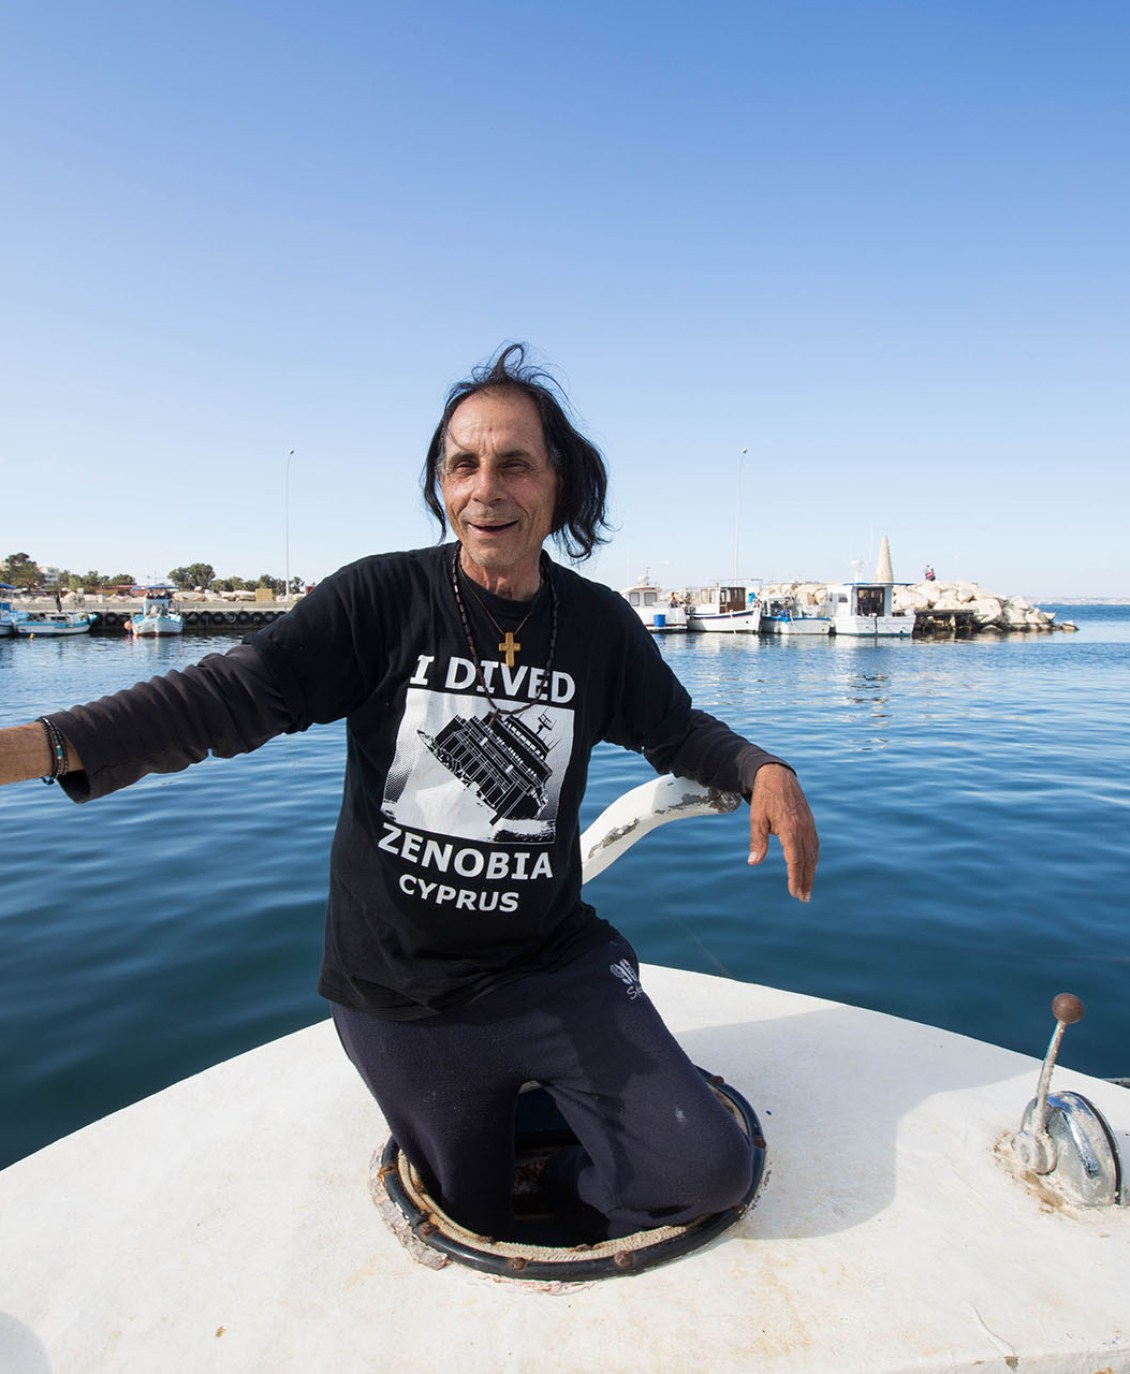 Antonios Mouchlis sits outside his boat in Limassol, Cyprus on March 19, 2016. Mouchlis has been fishing since he was a little boy and is one of the many fishermen who have been affected by the overfishing in Cyprus.